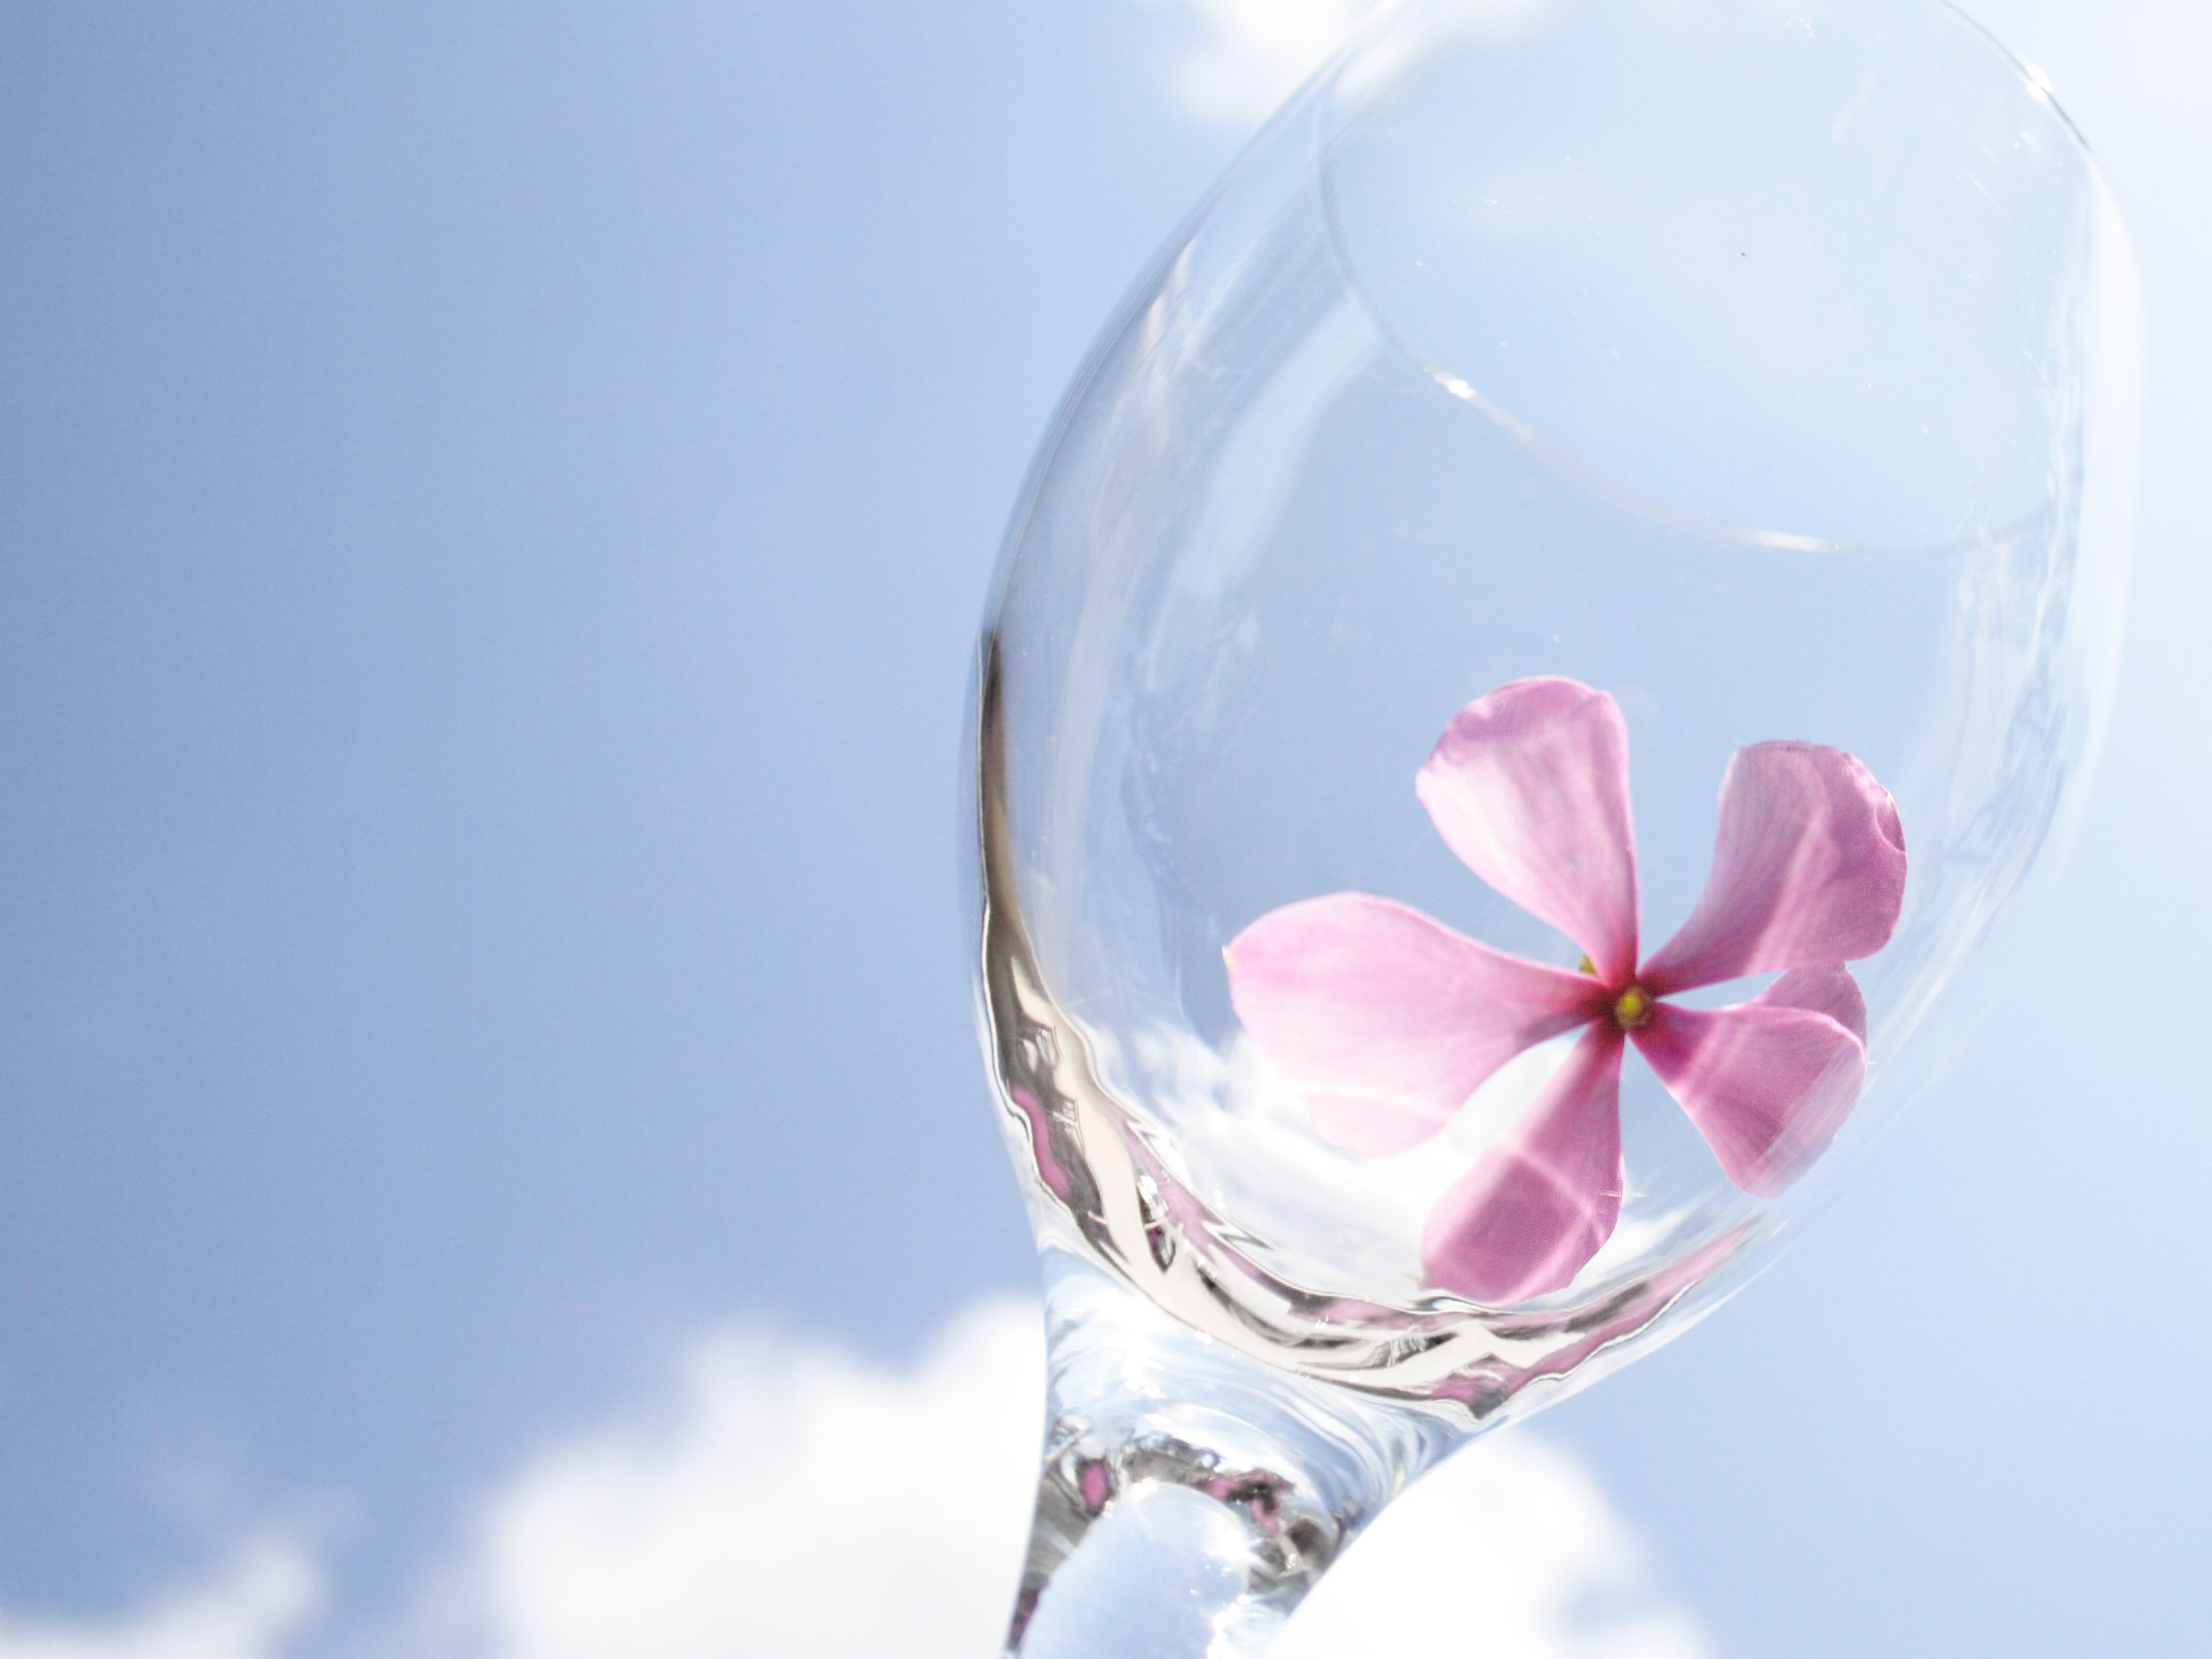 Give your wine glasses a floral theme